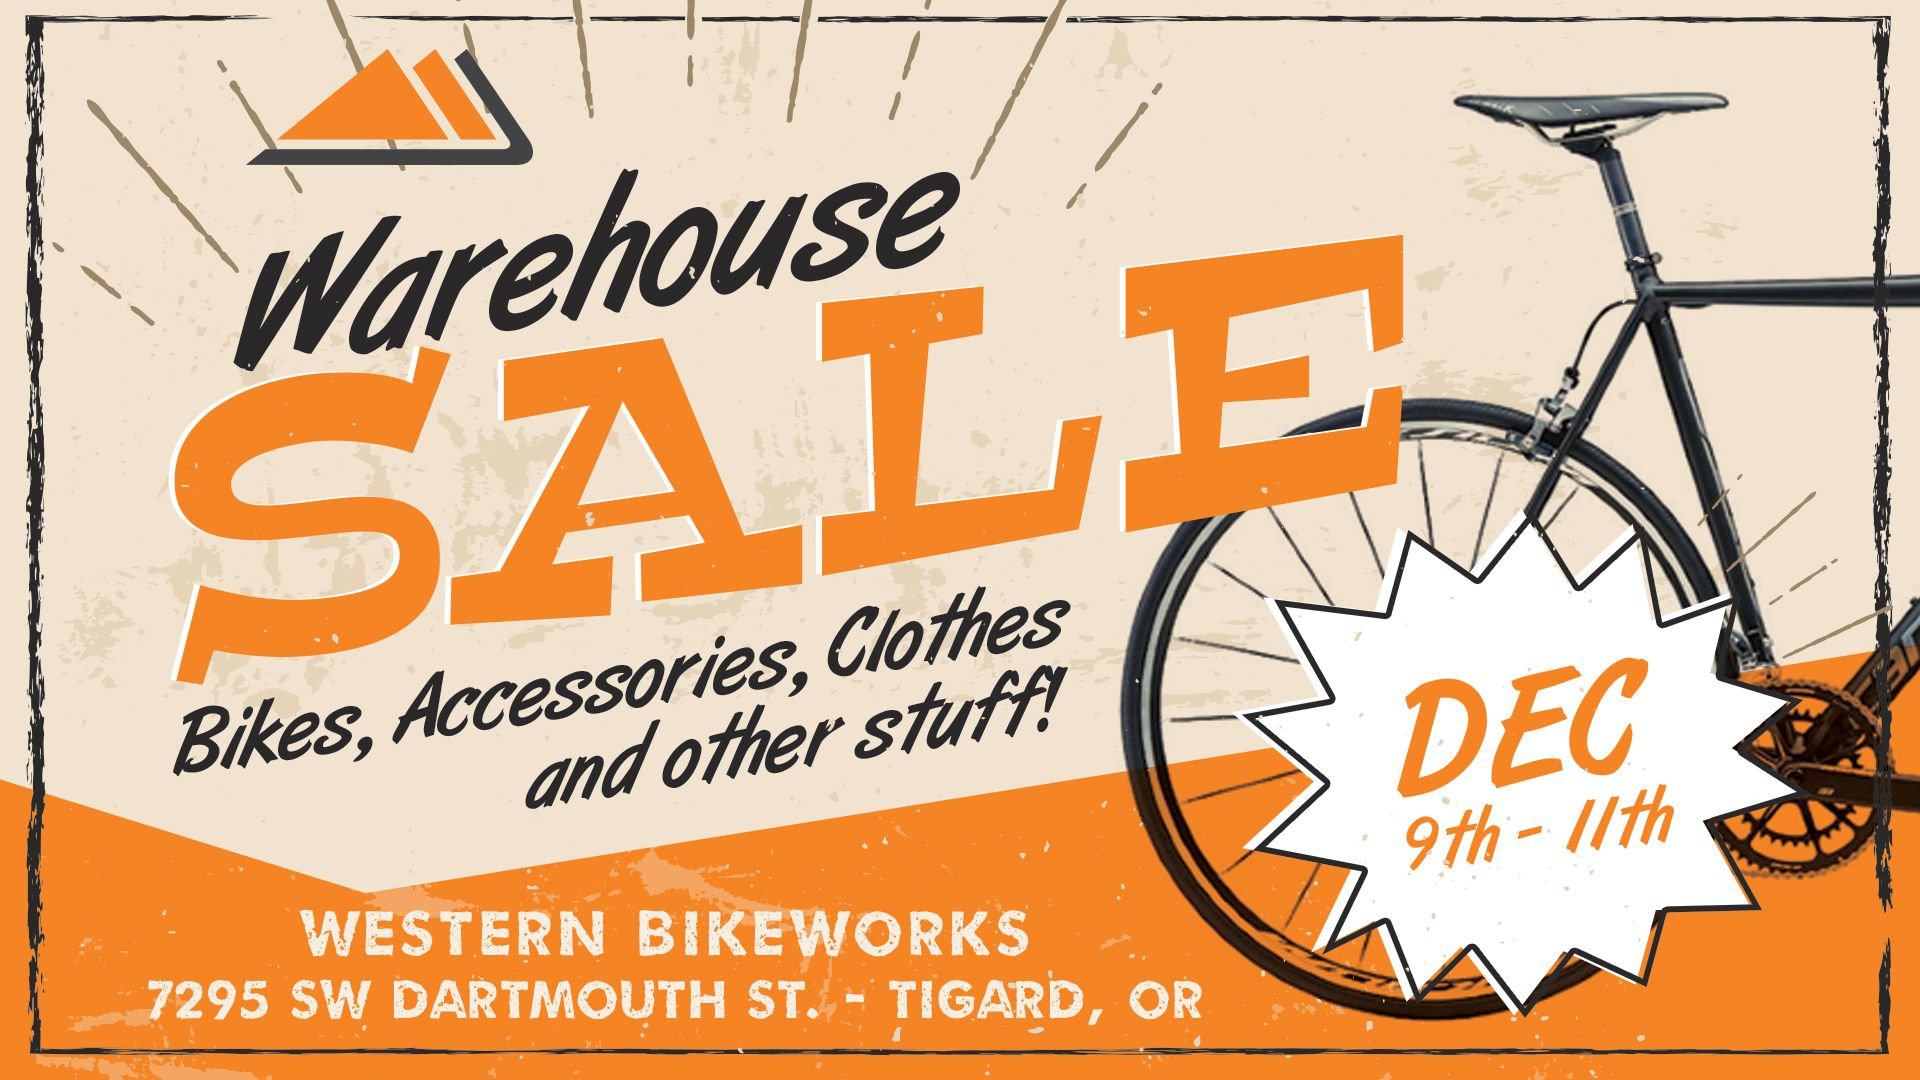 Warehouse Sale - 3 Days Only!